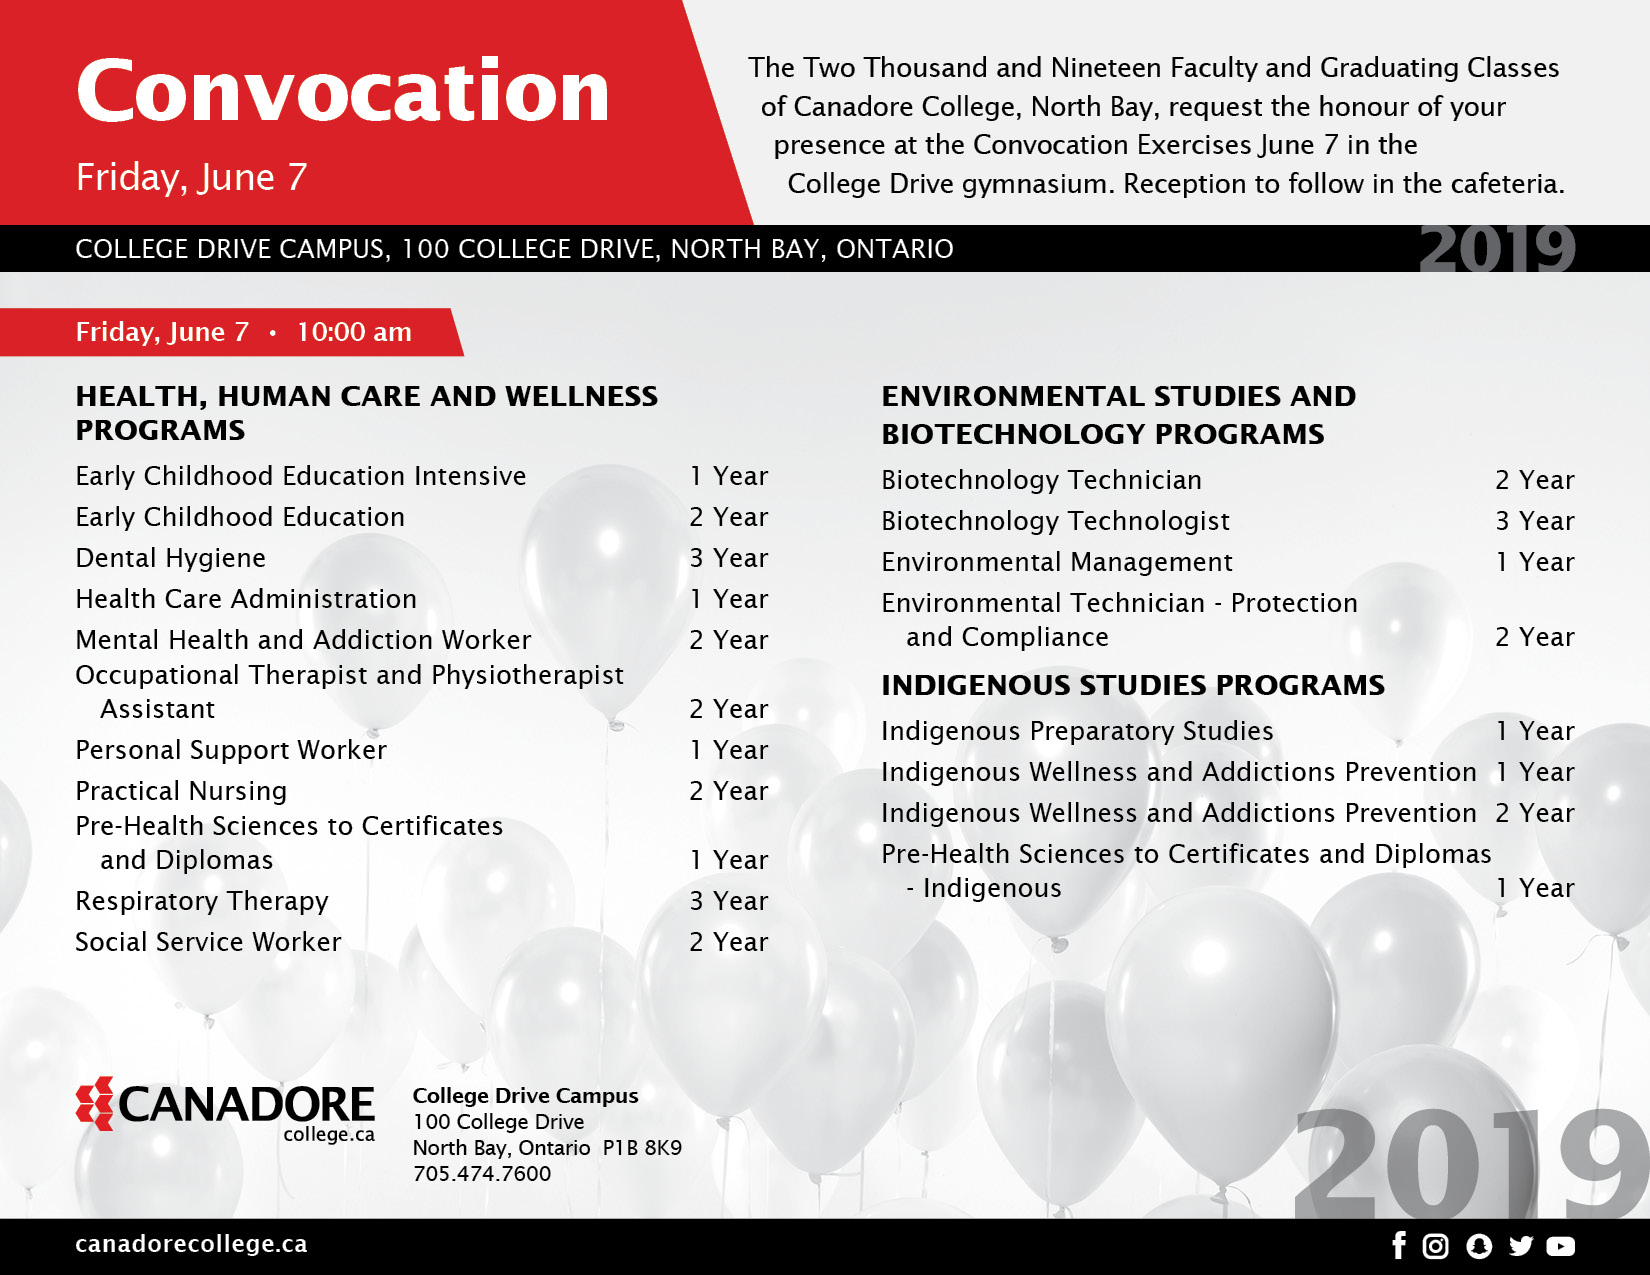 June 7 Convocation Invite